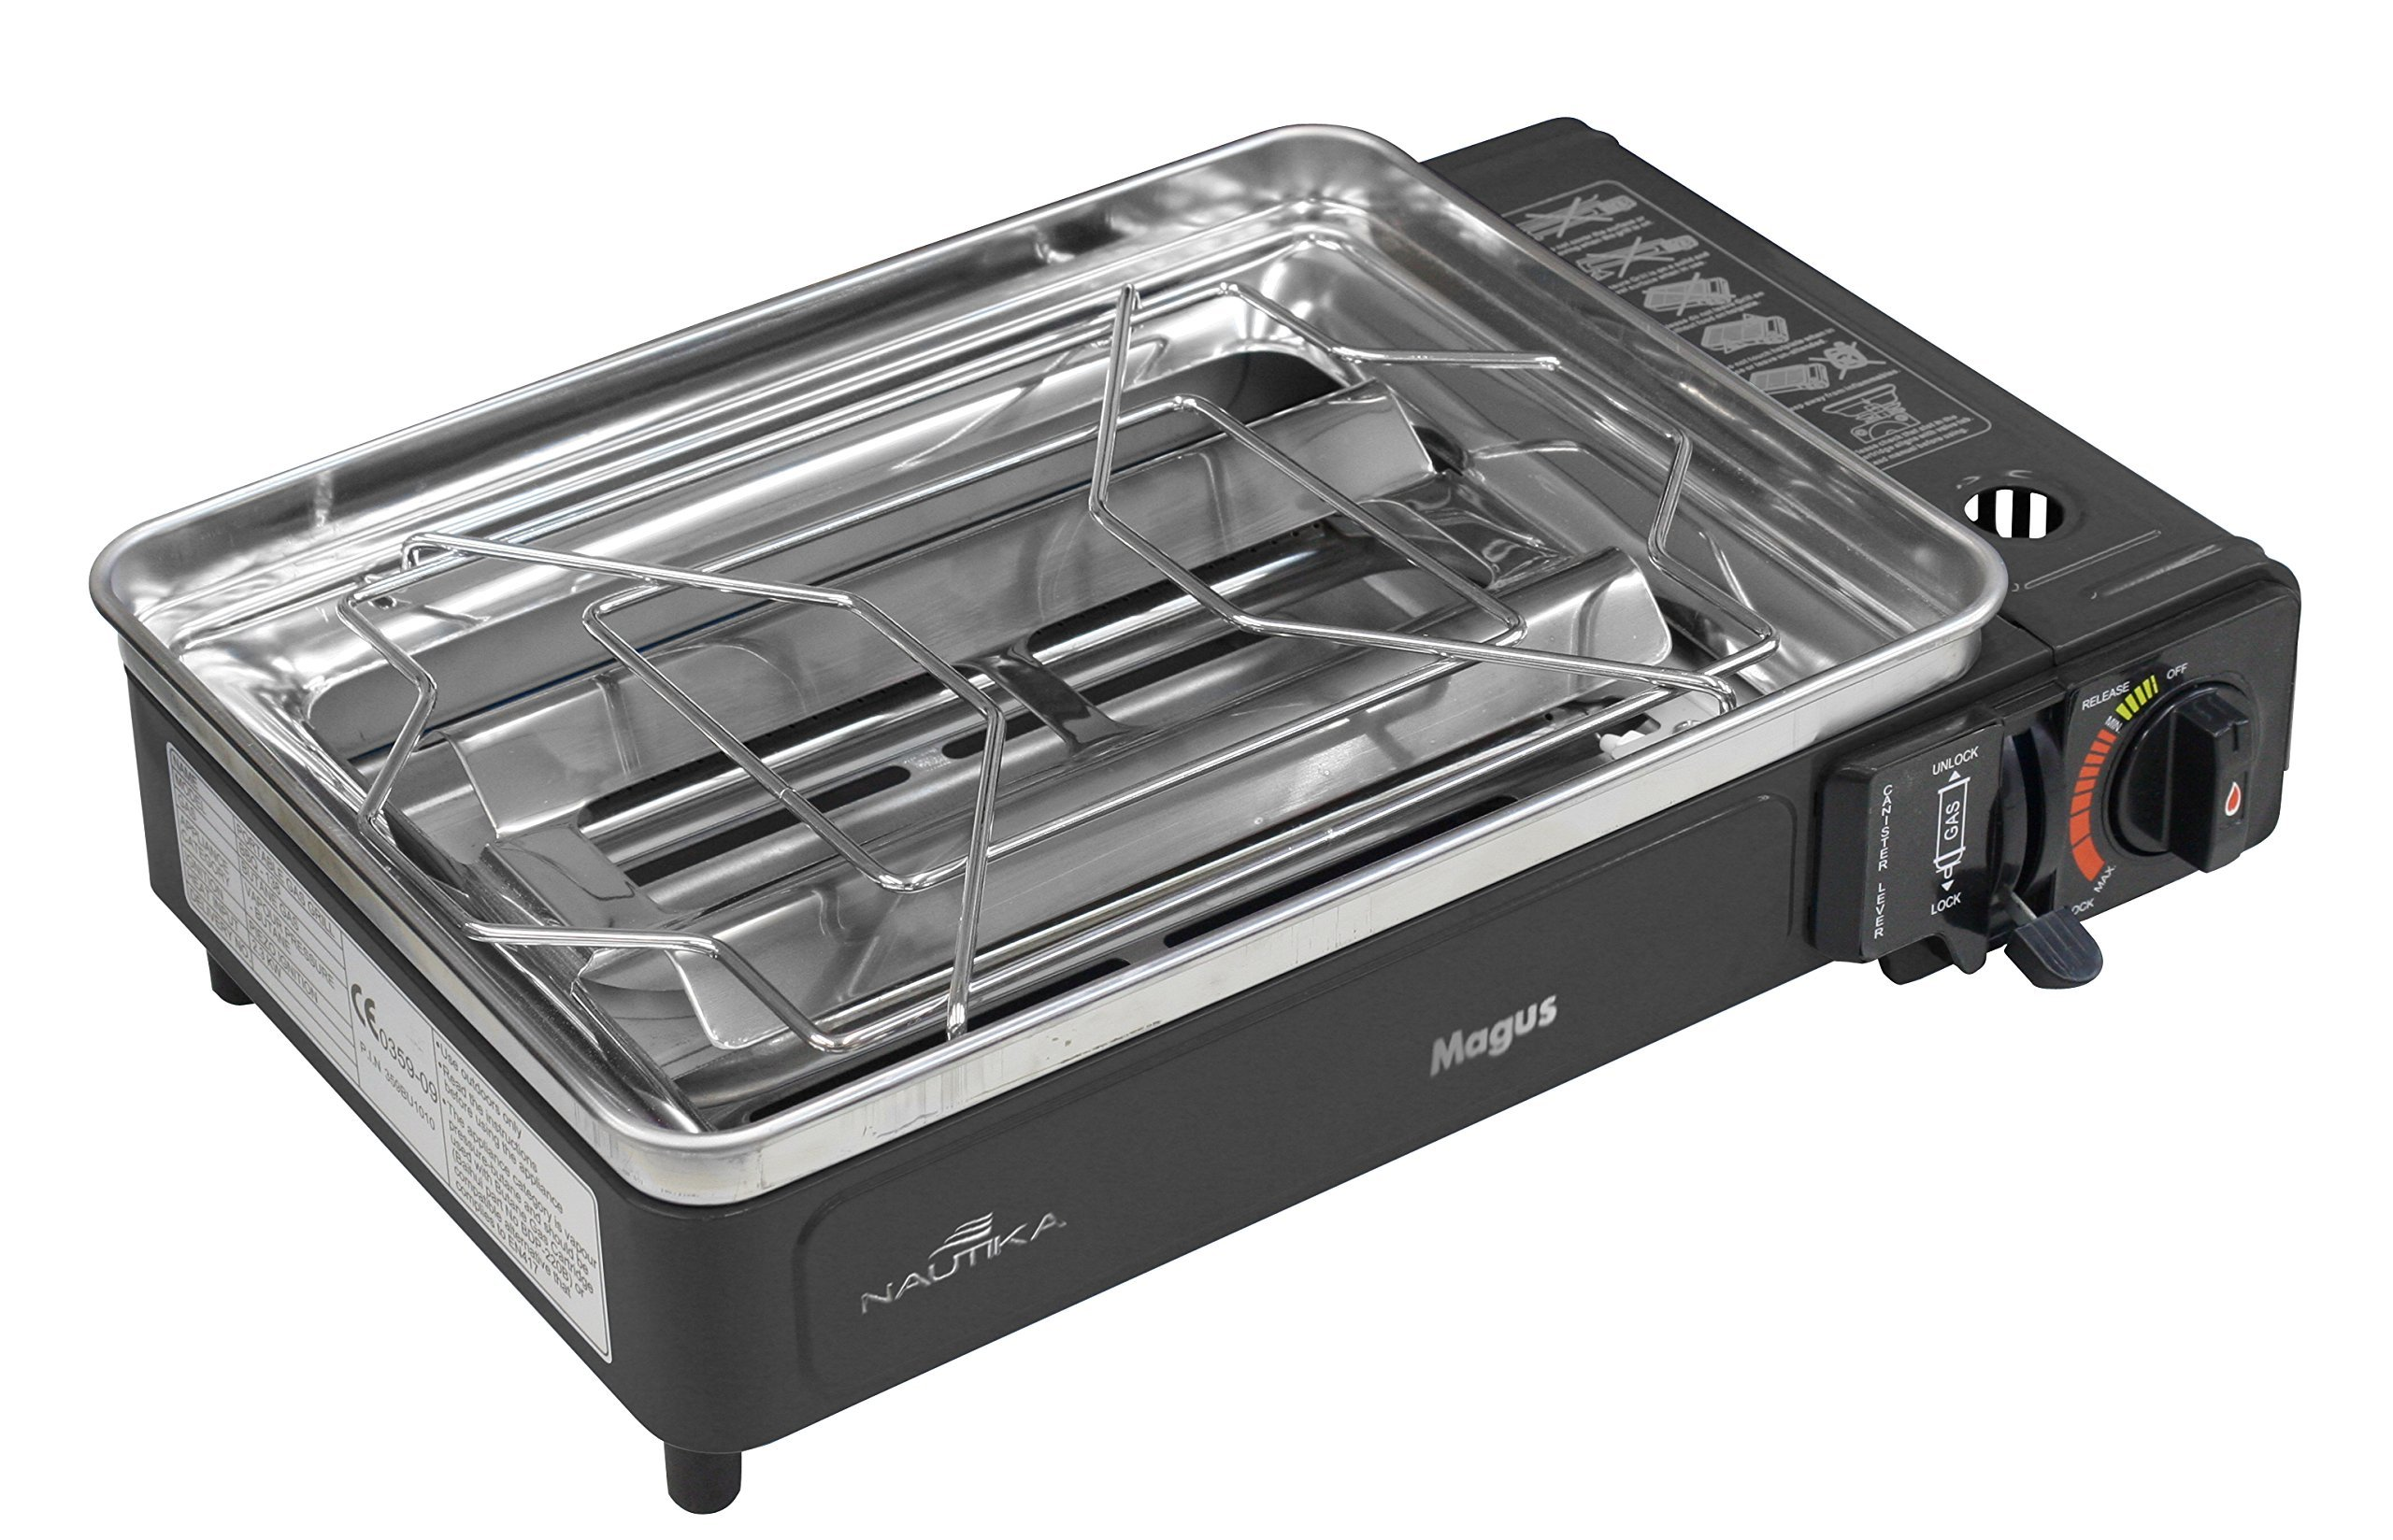 NTK MAGUS, Butane Grill Stove, BBQ Crate, Non-Stick Griddle, 4 Scewers and Pan Base.  Automatic Piezo Starter Gas Not Included